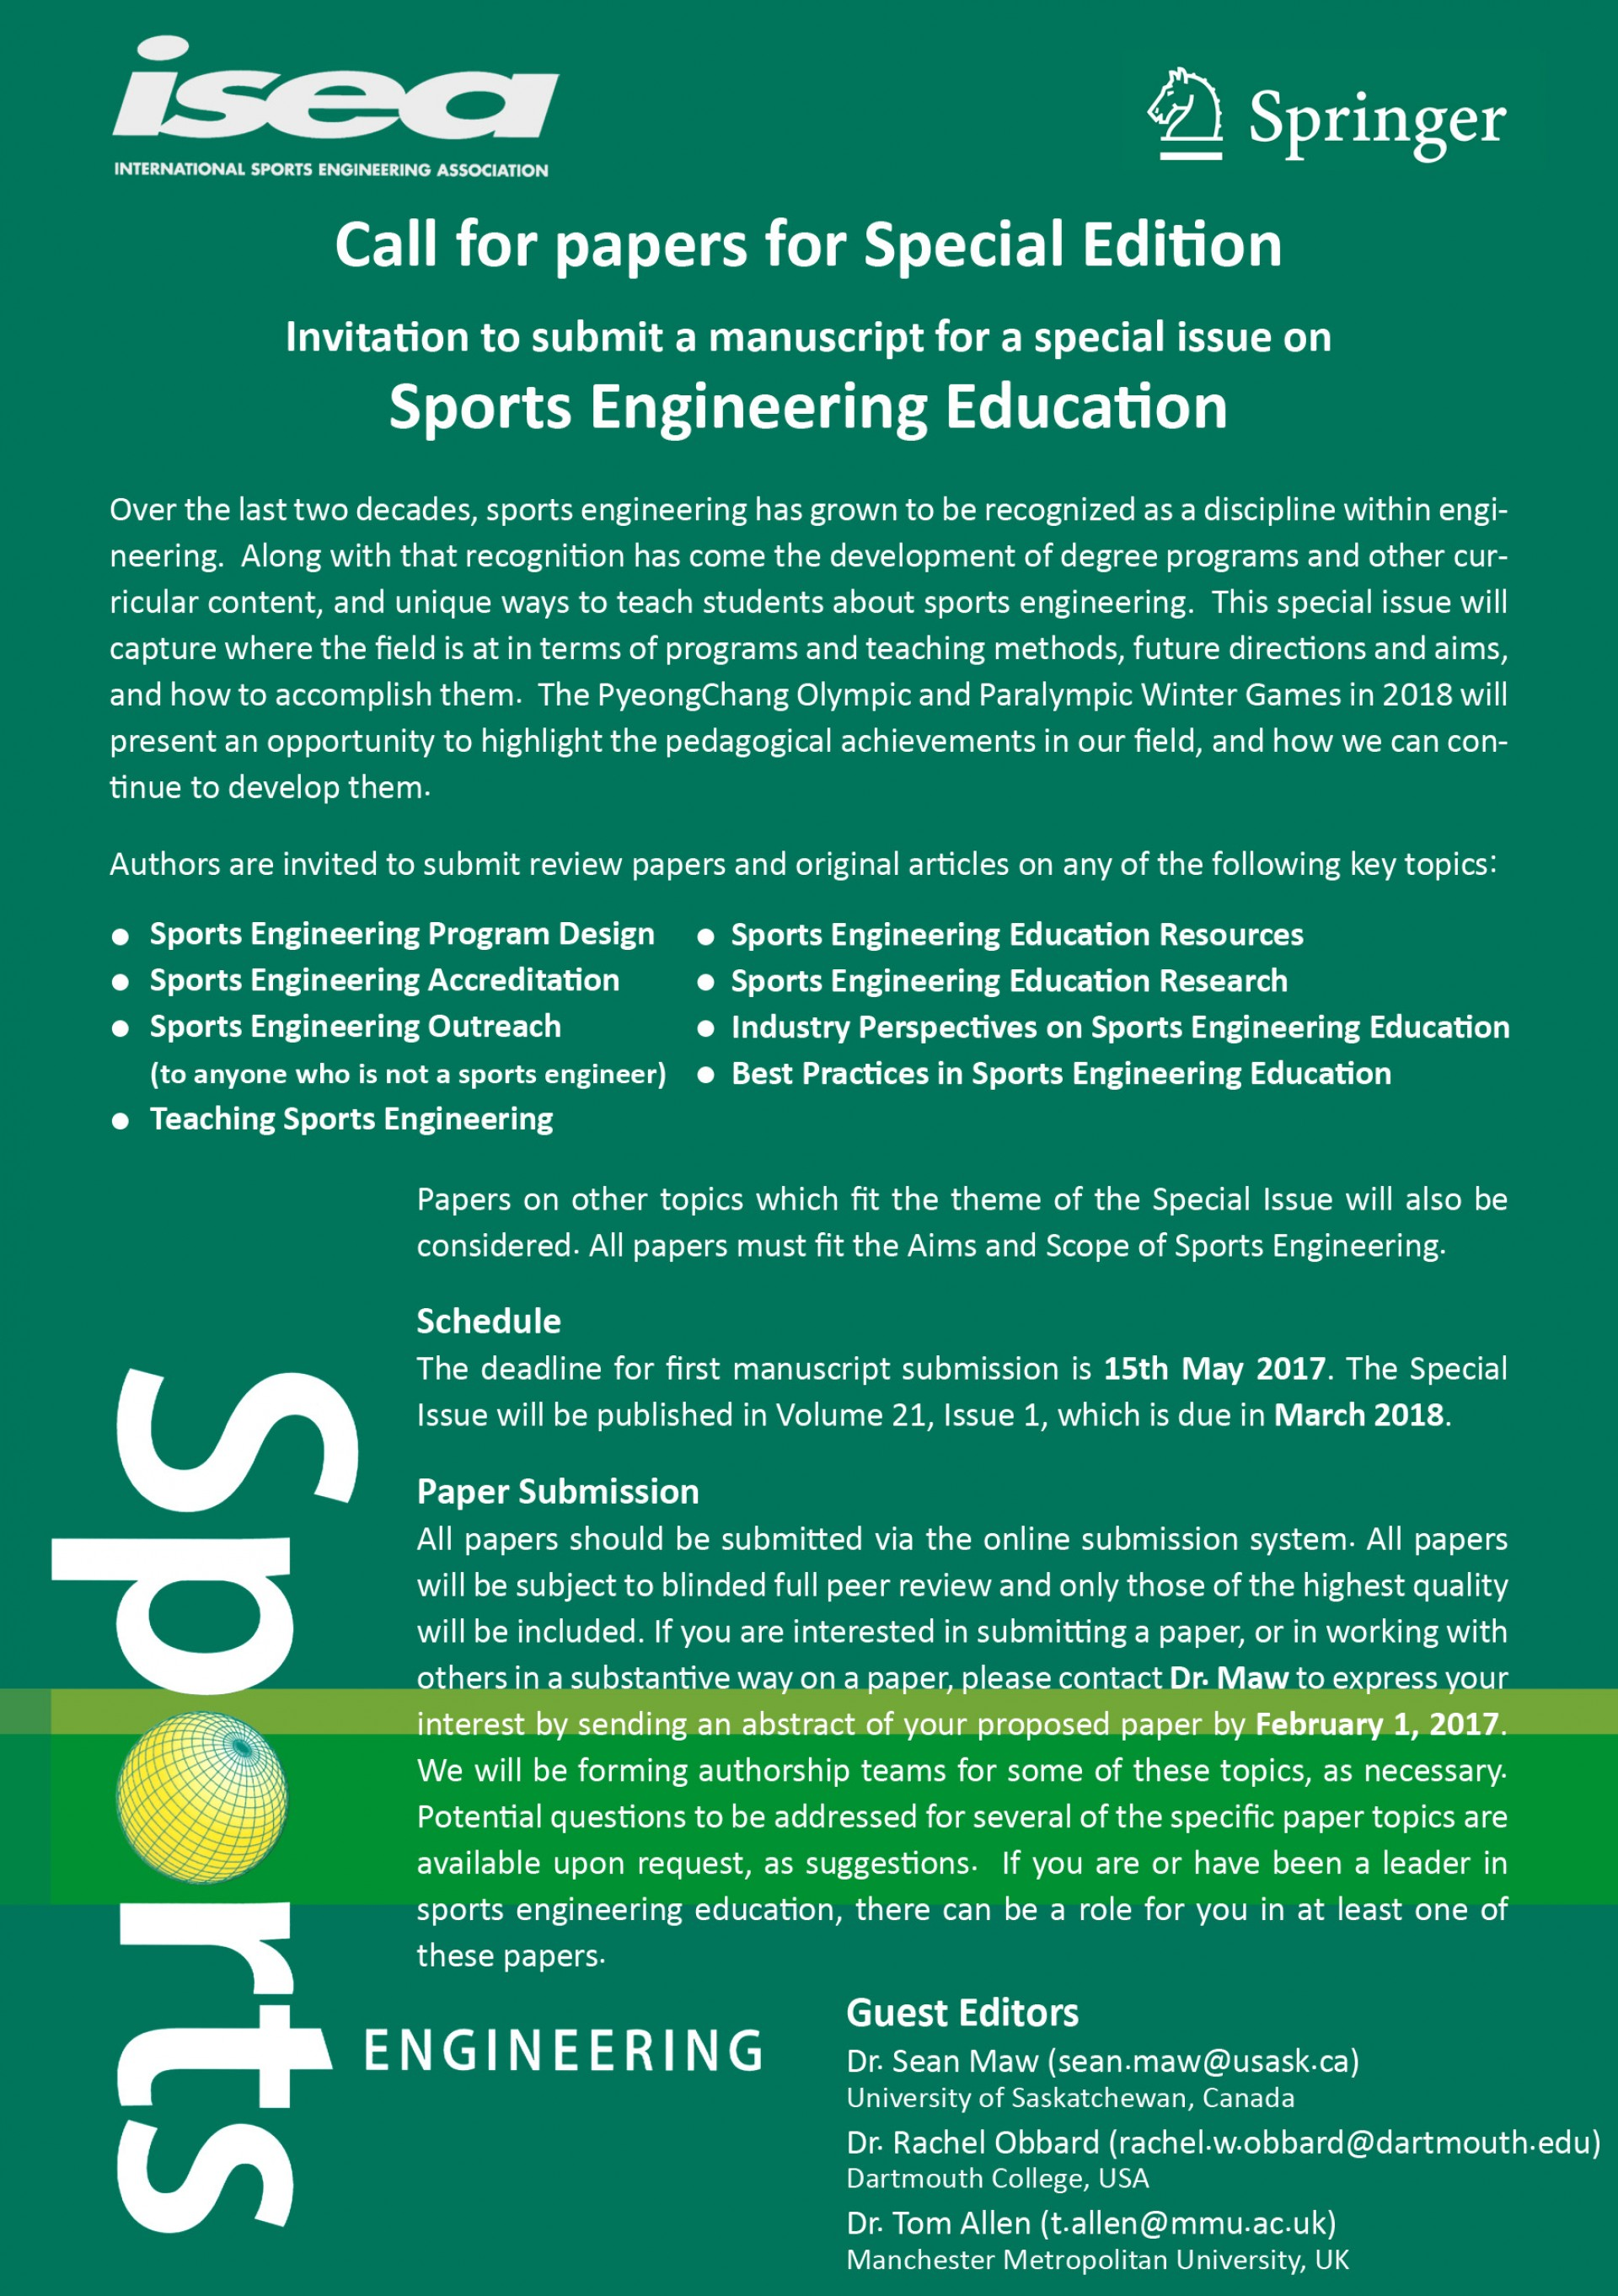 009 Sports Eng Jn Education Special Ed Copy Best Research Paper Topics Formidable 1920